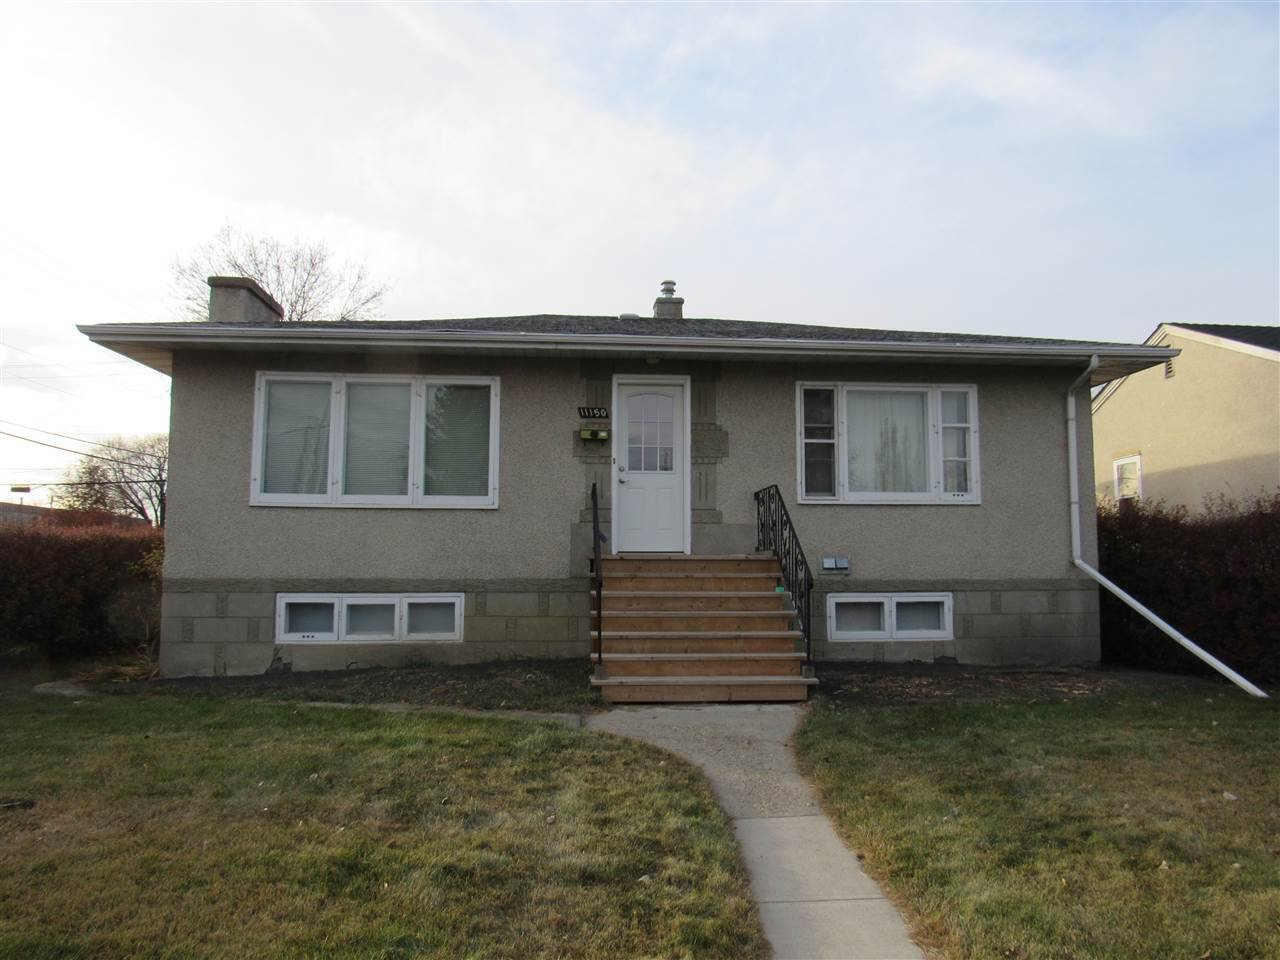 Main Photo: 11150 118 Street in Edmonton: Zone 08 House for sale : MLS®# E4220012